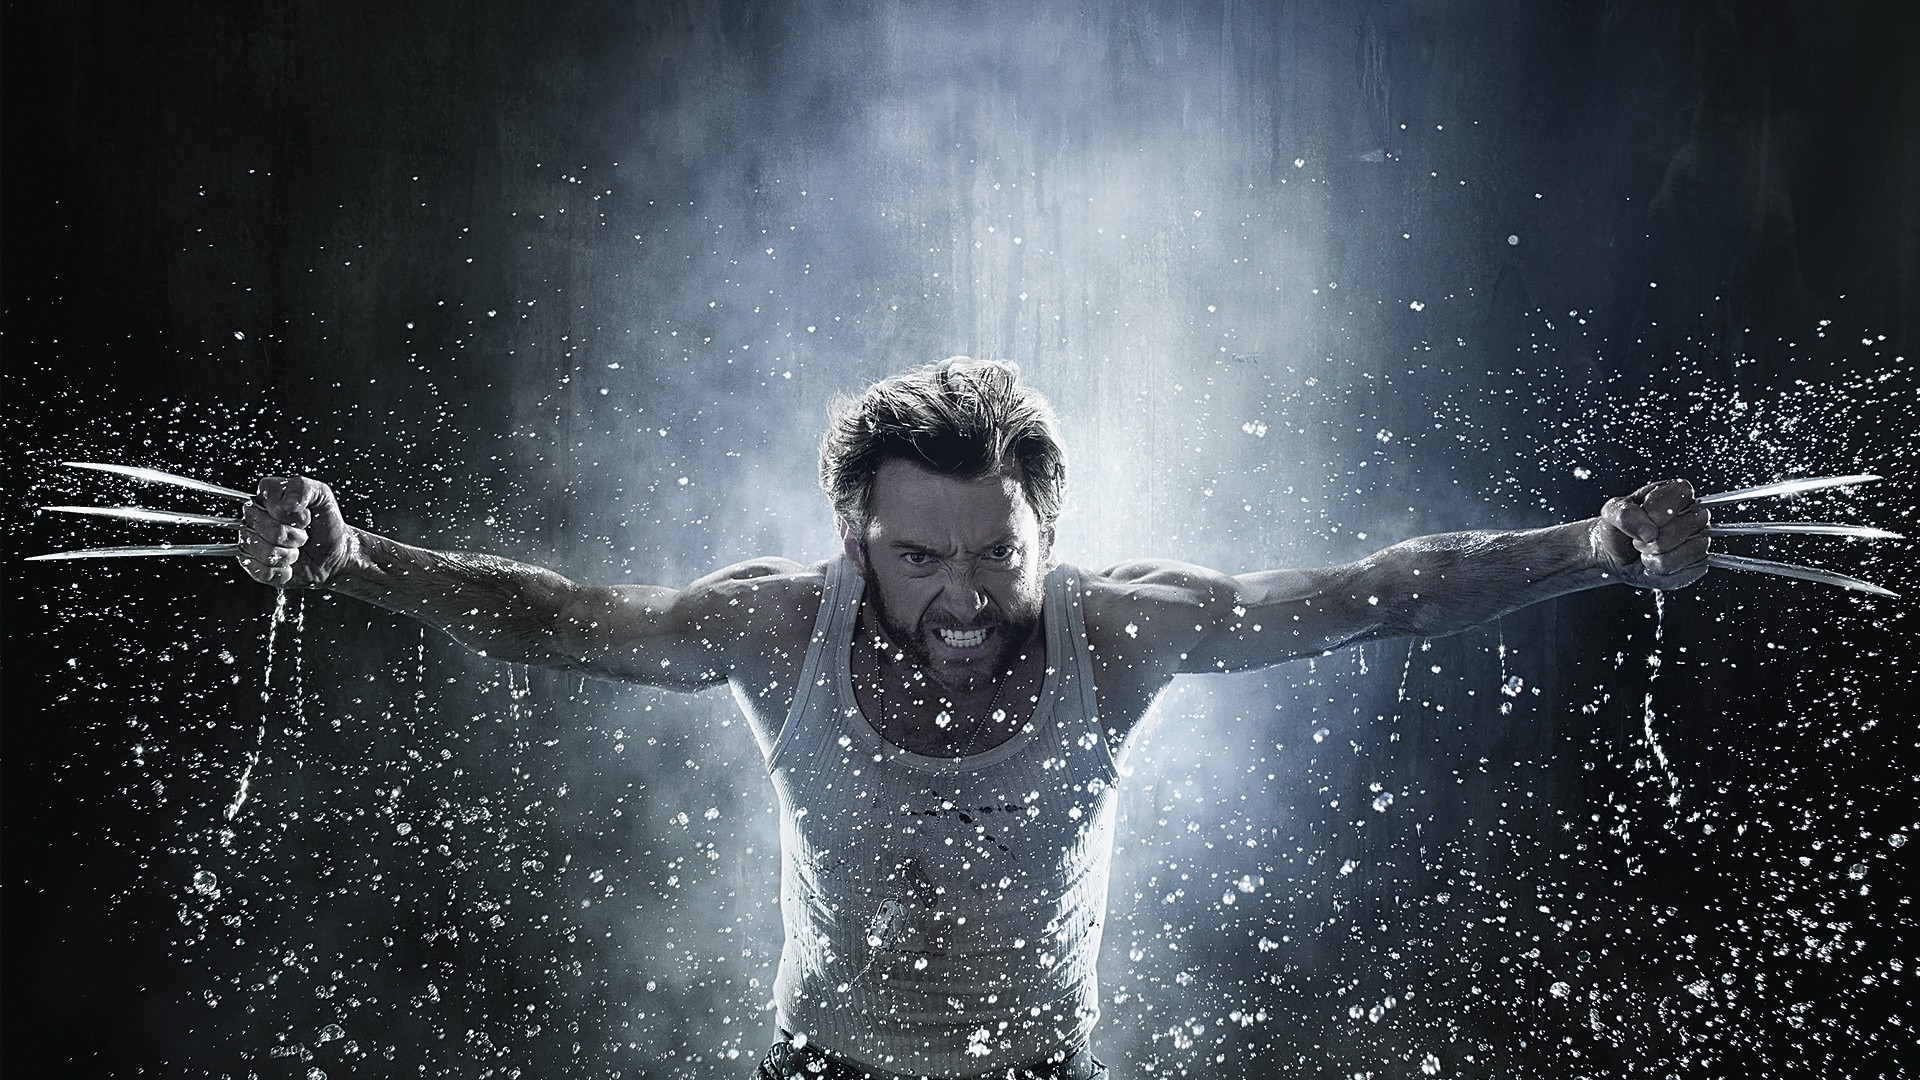 x men wolverine character wallpaper